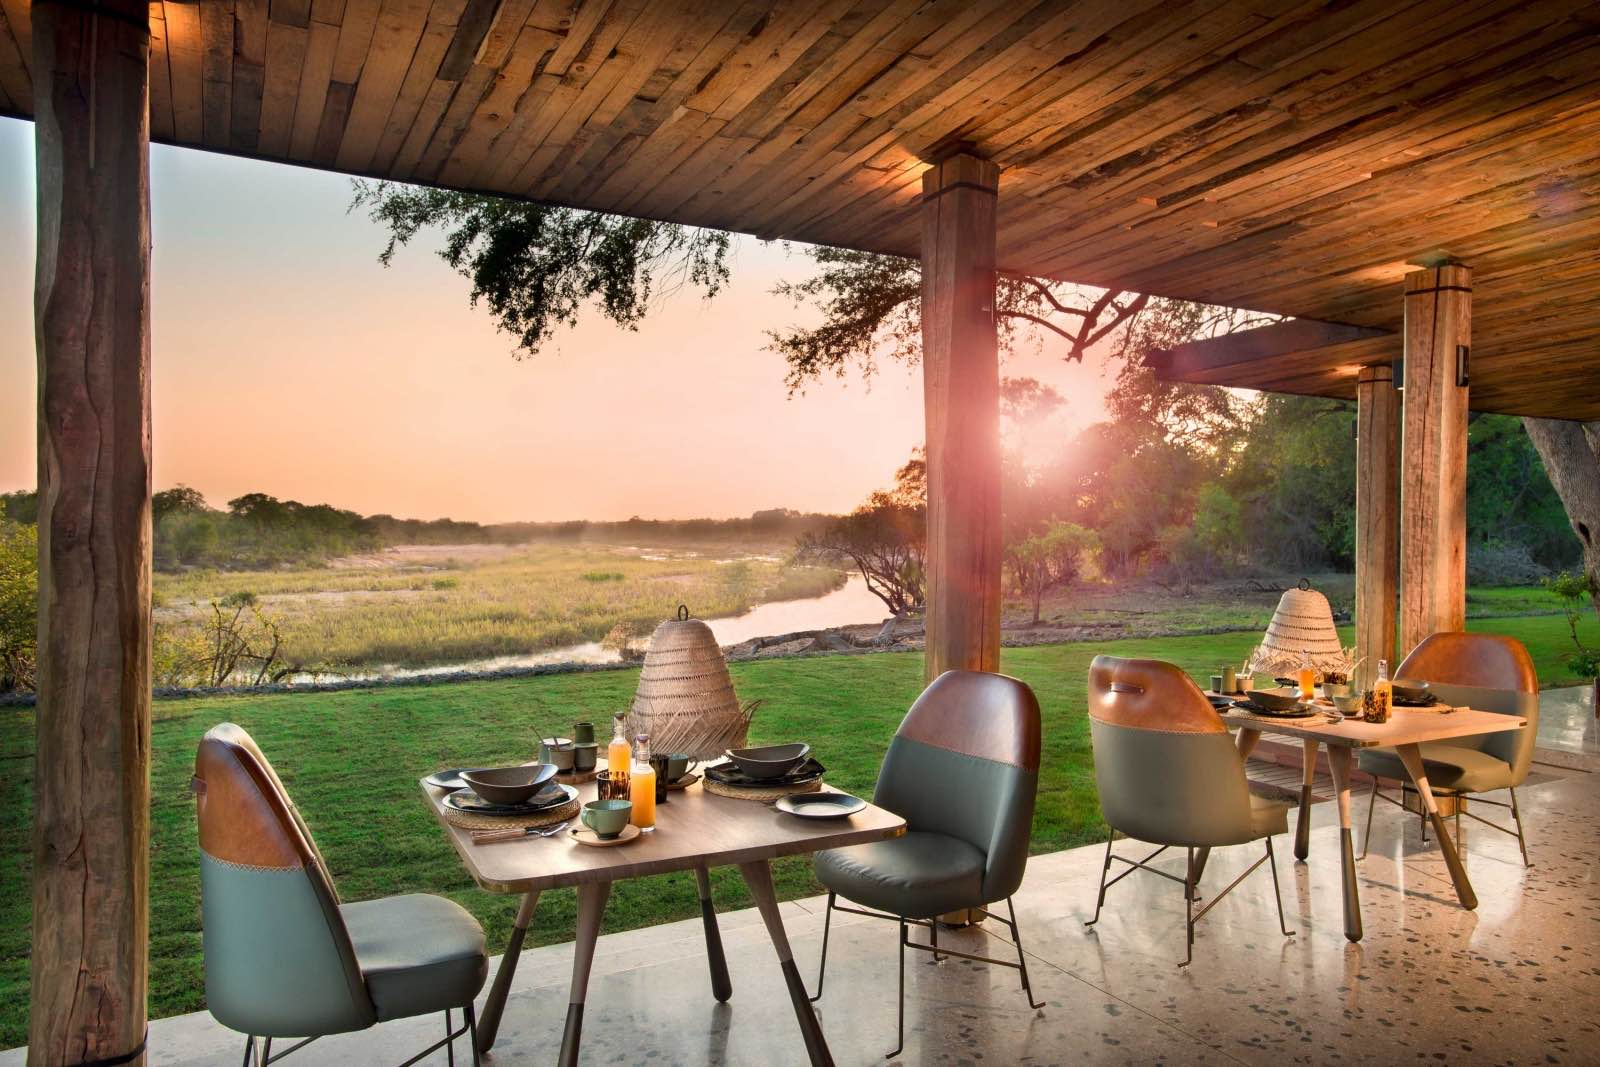 Dining on the verandah with views of the river